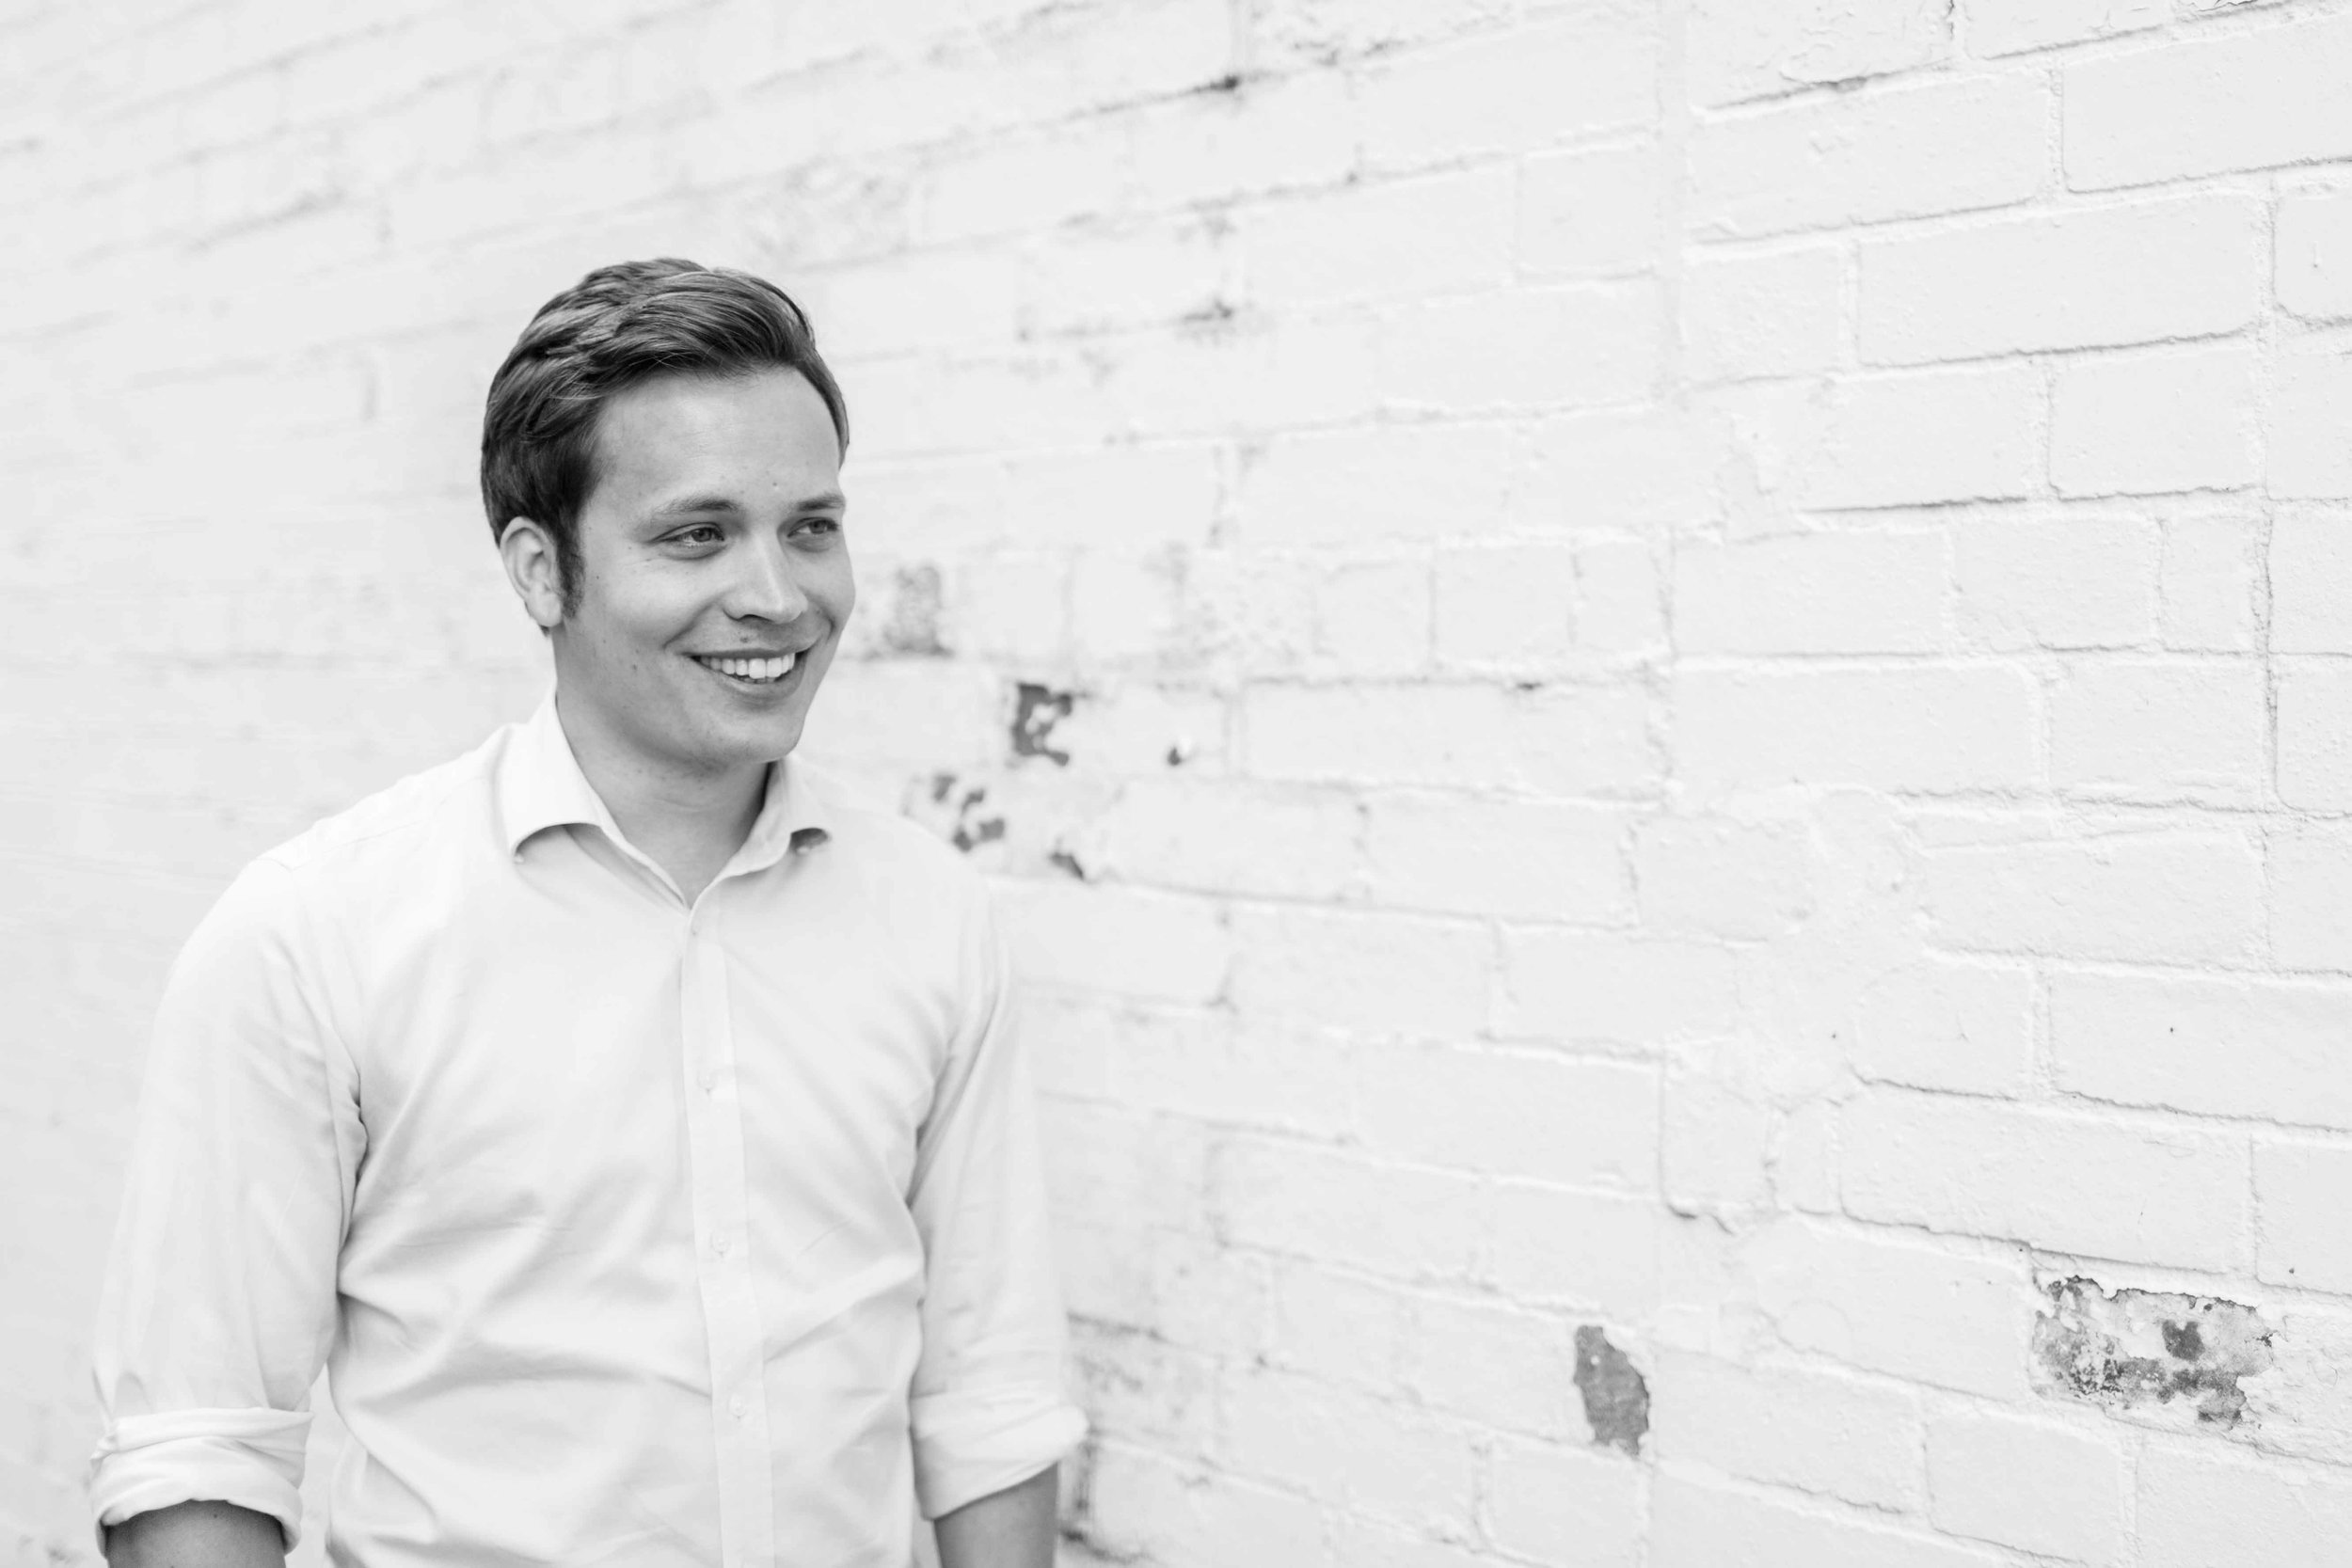 james park riba - DIRECTORHaving worked at several architectural practices, James has been able to acquire varied experience, particularly in the private residential sector.